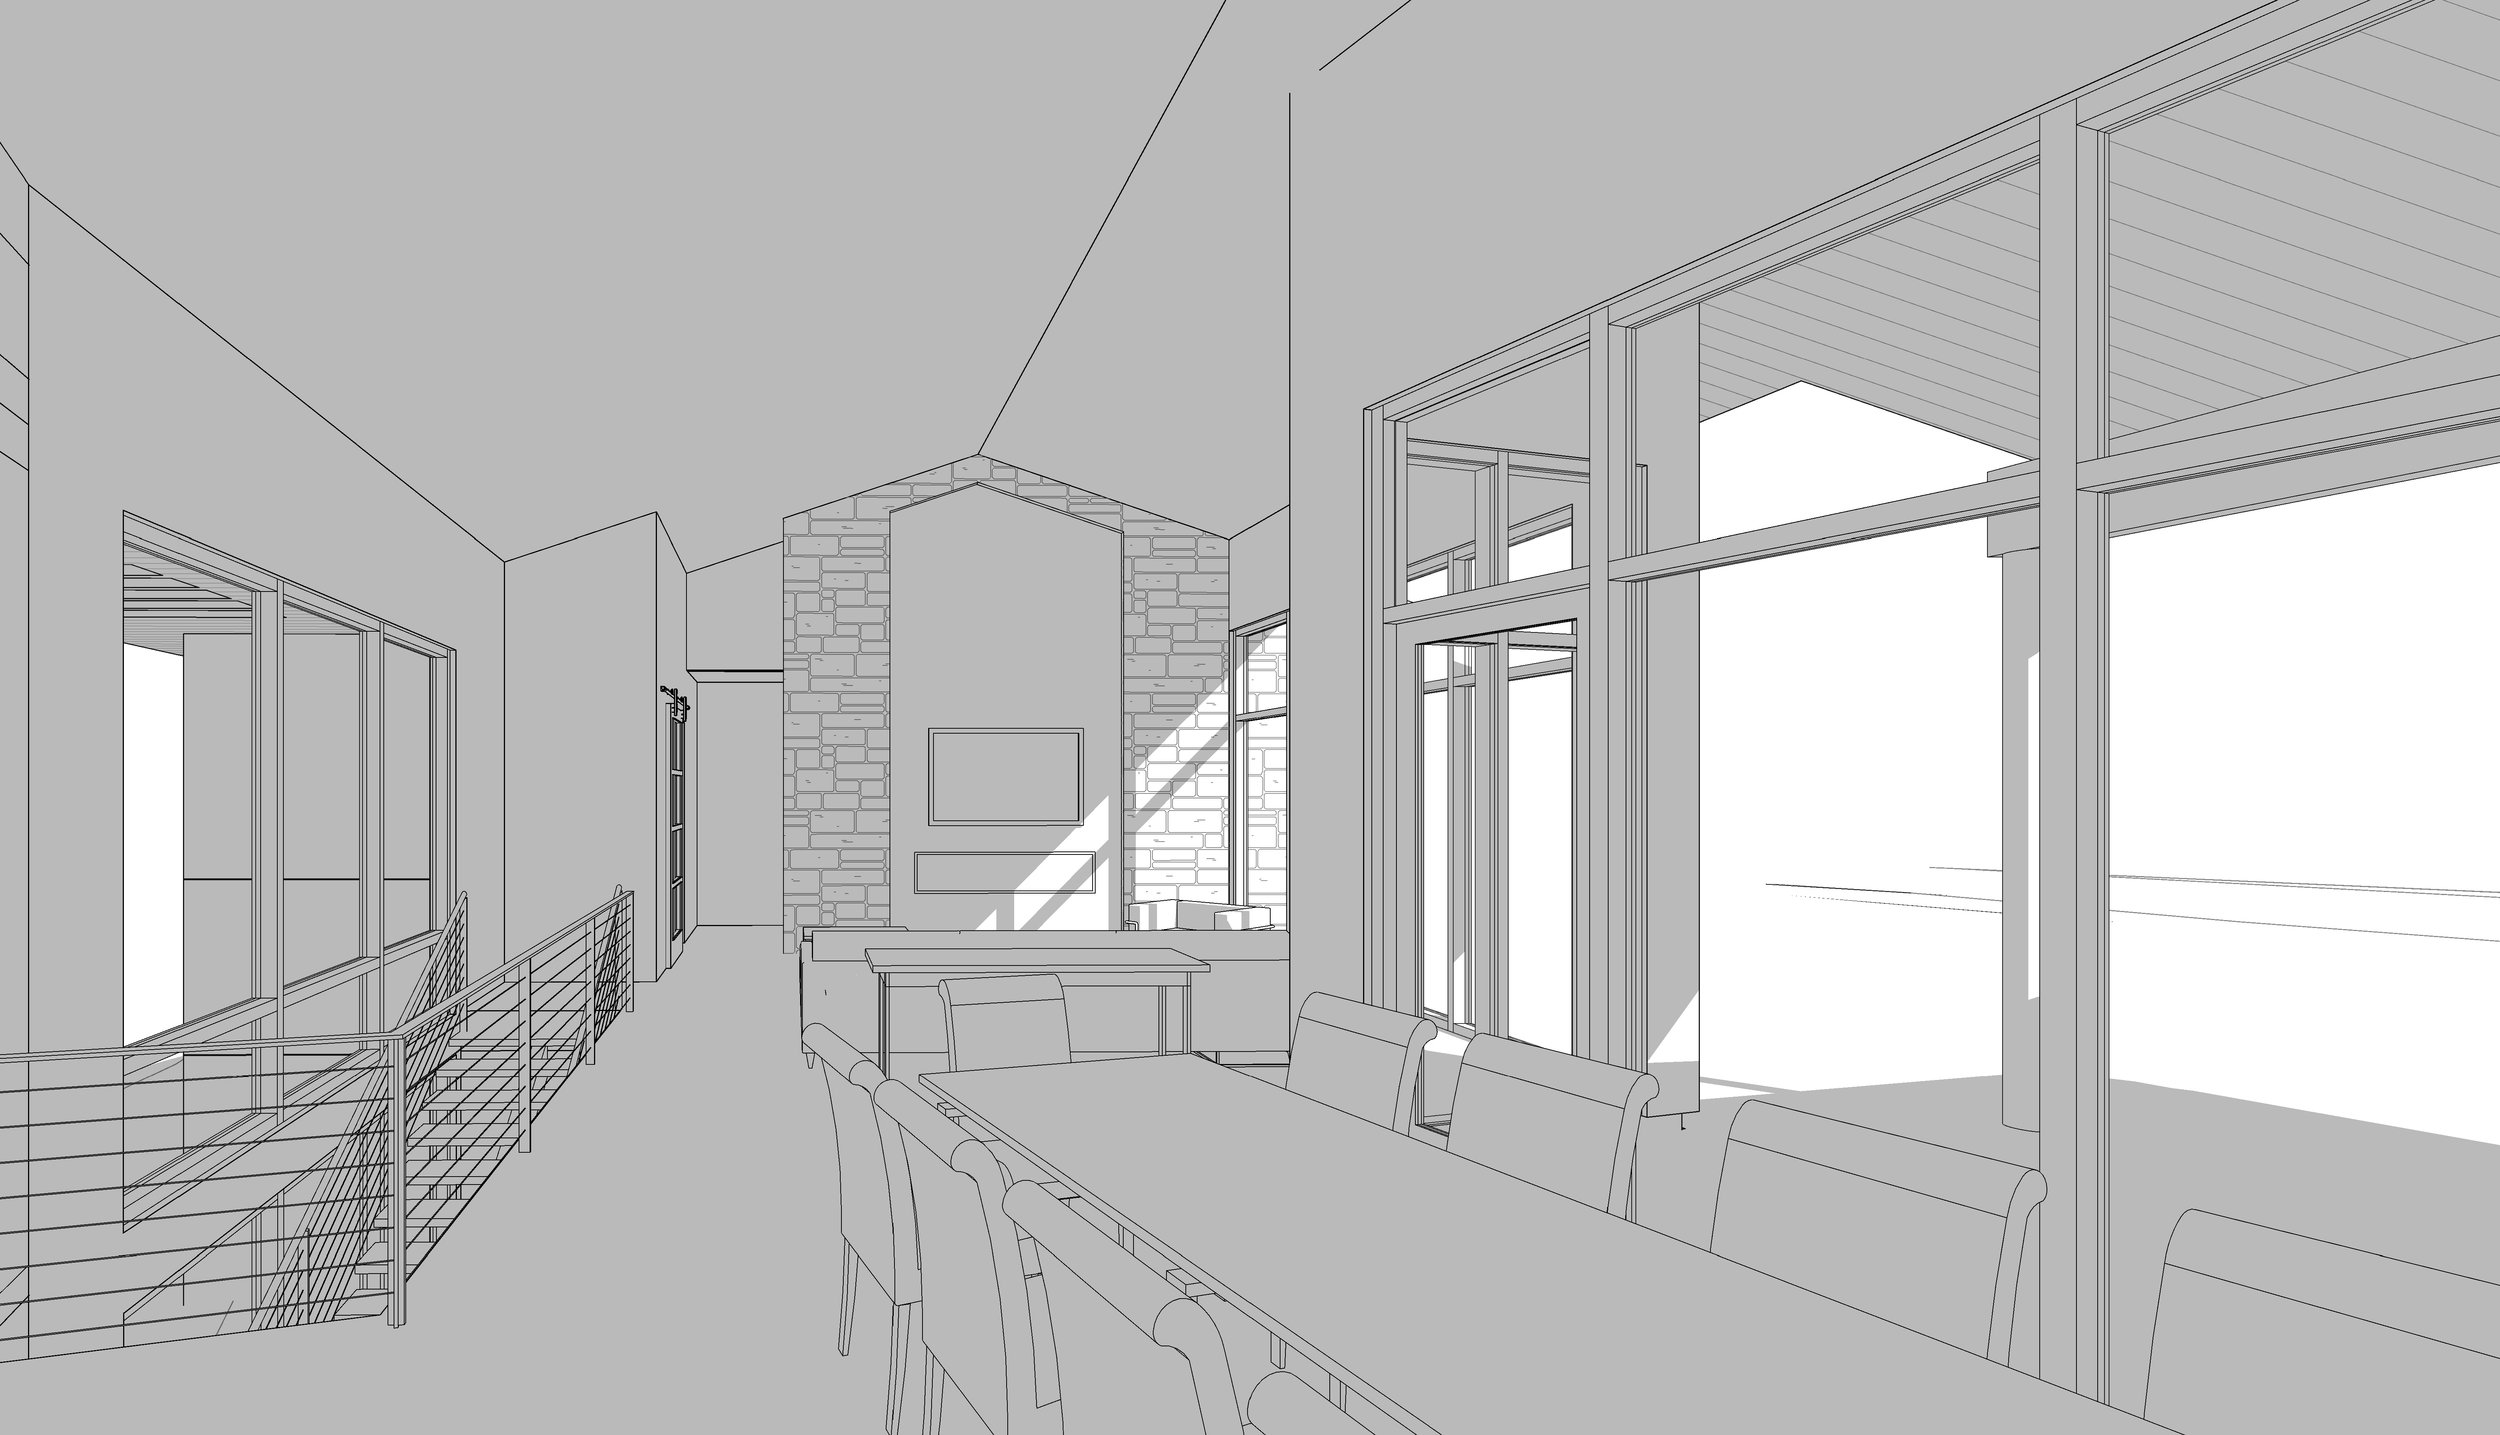 Interior rendered view